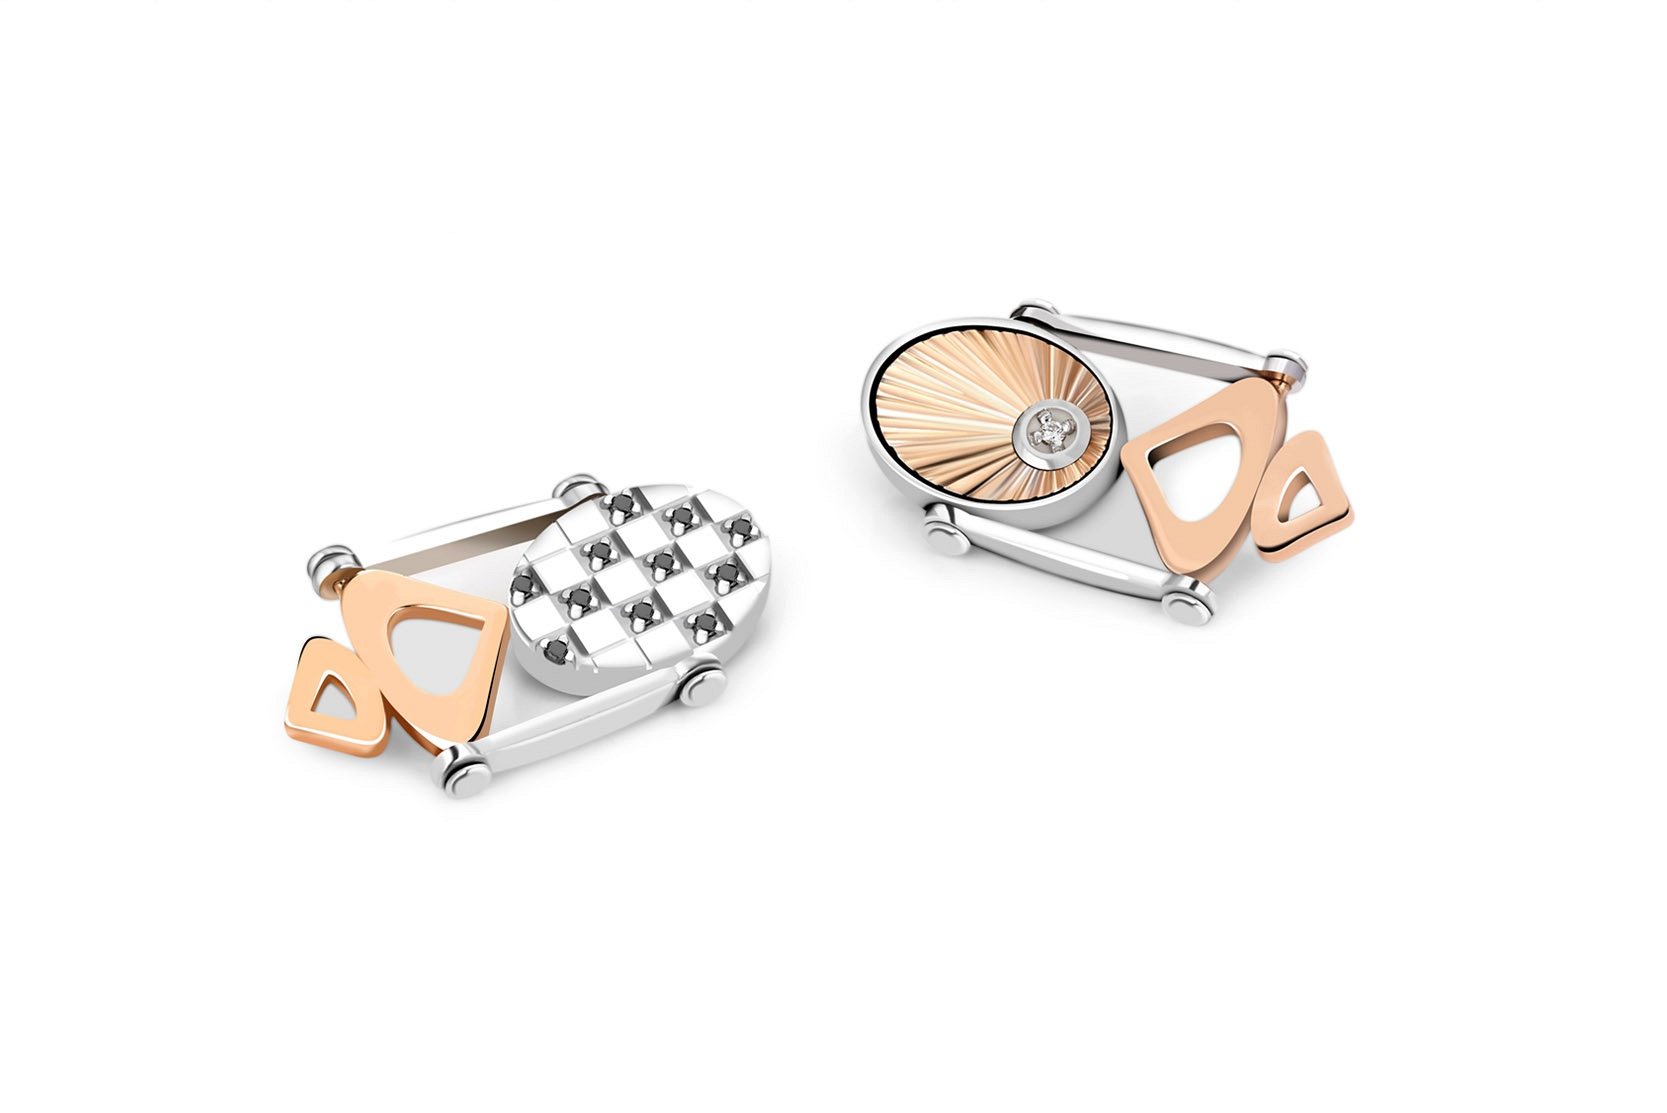 White and rose gold cufflinks